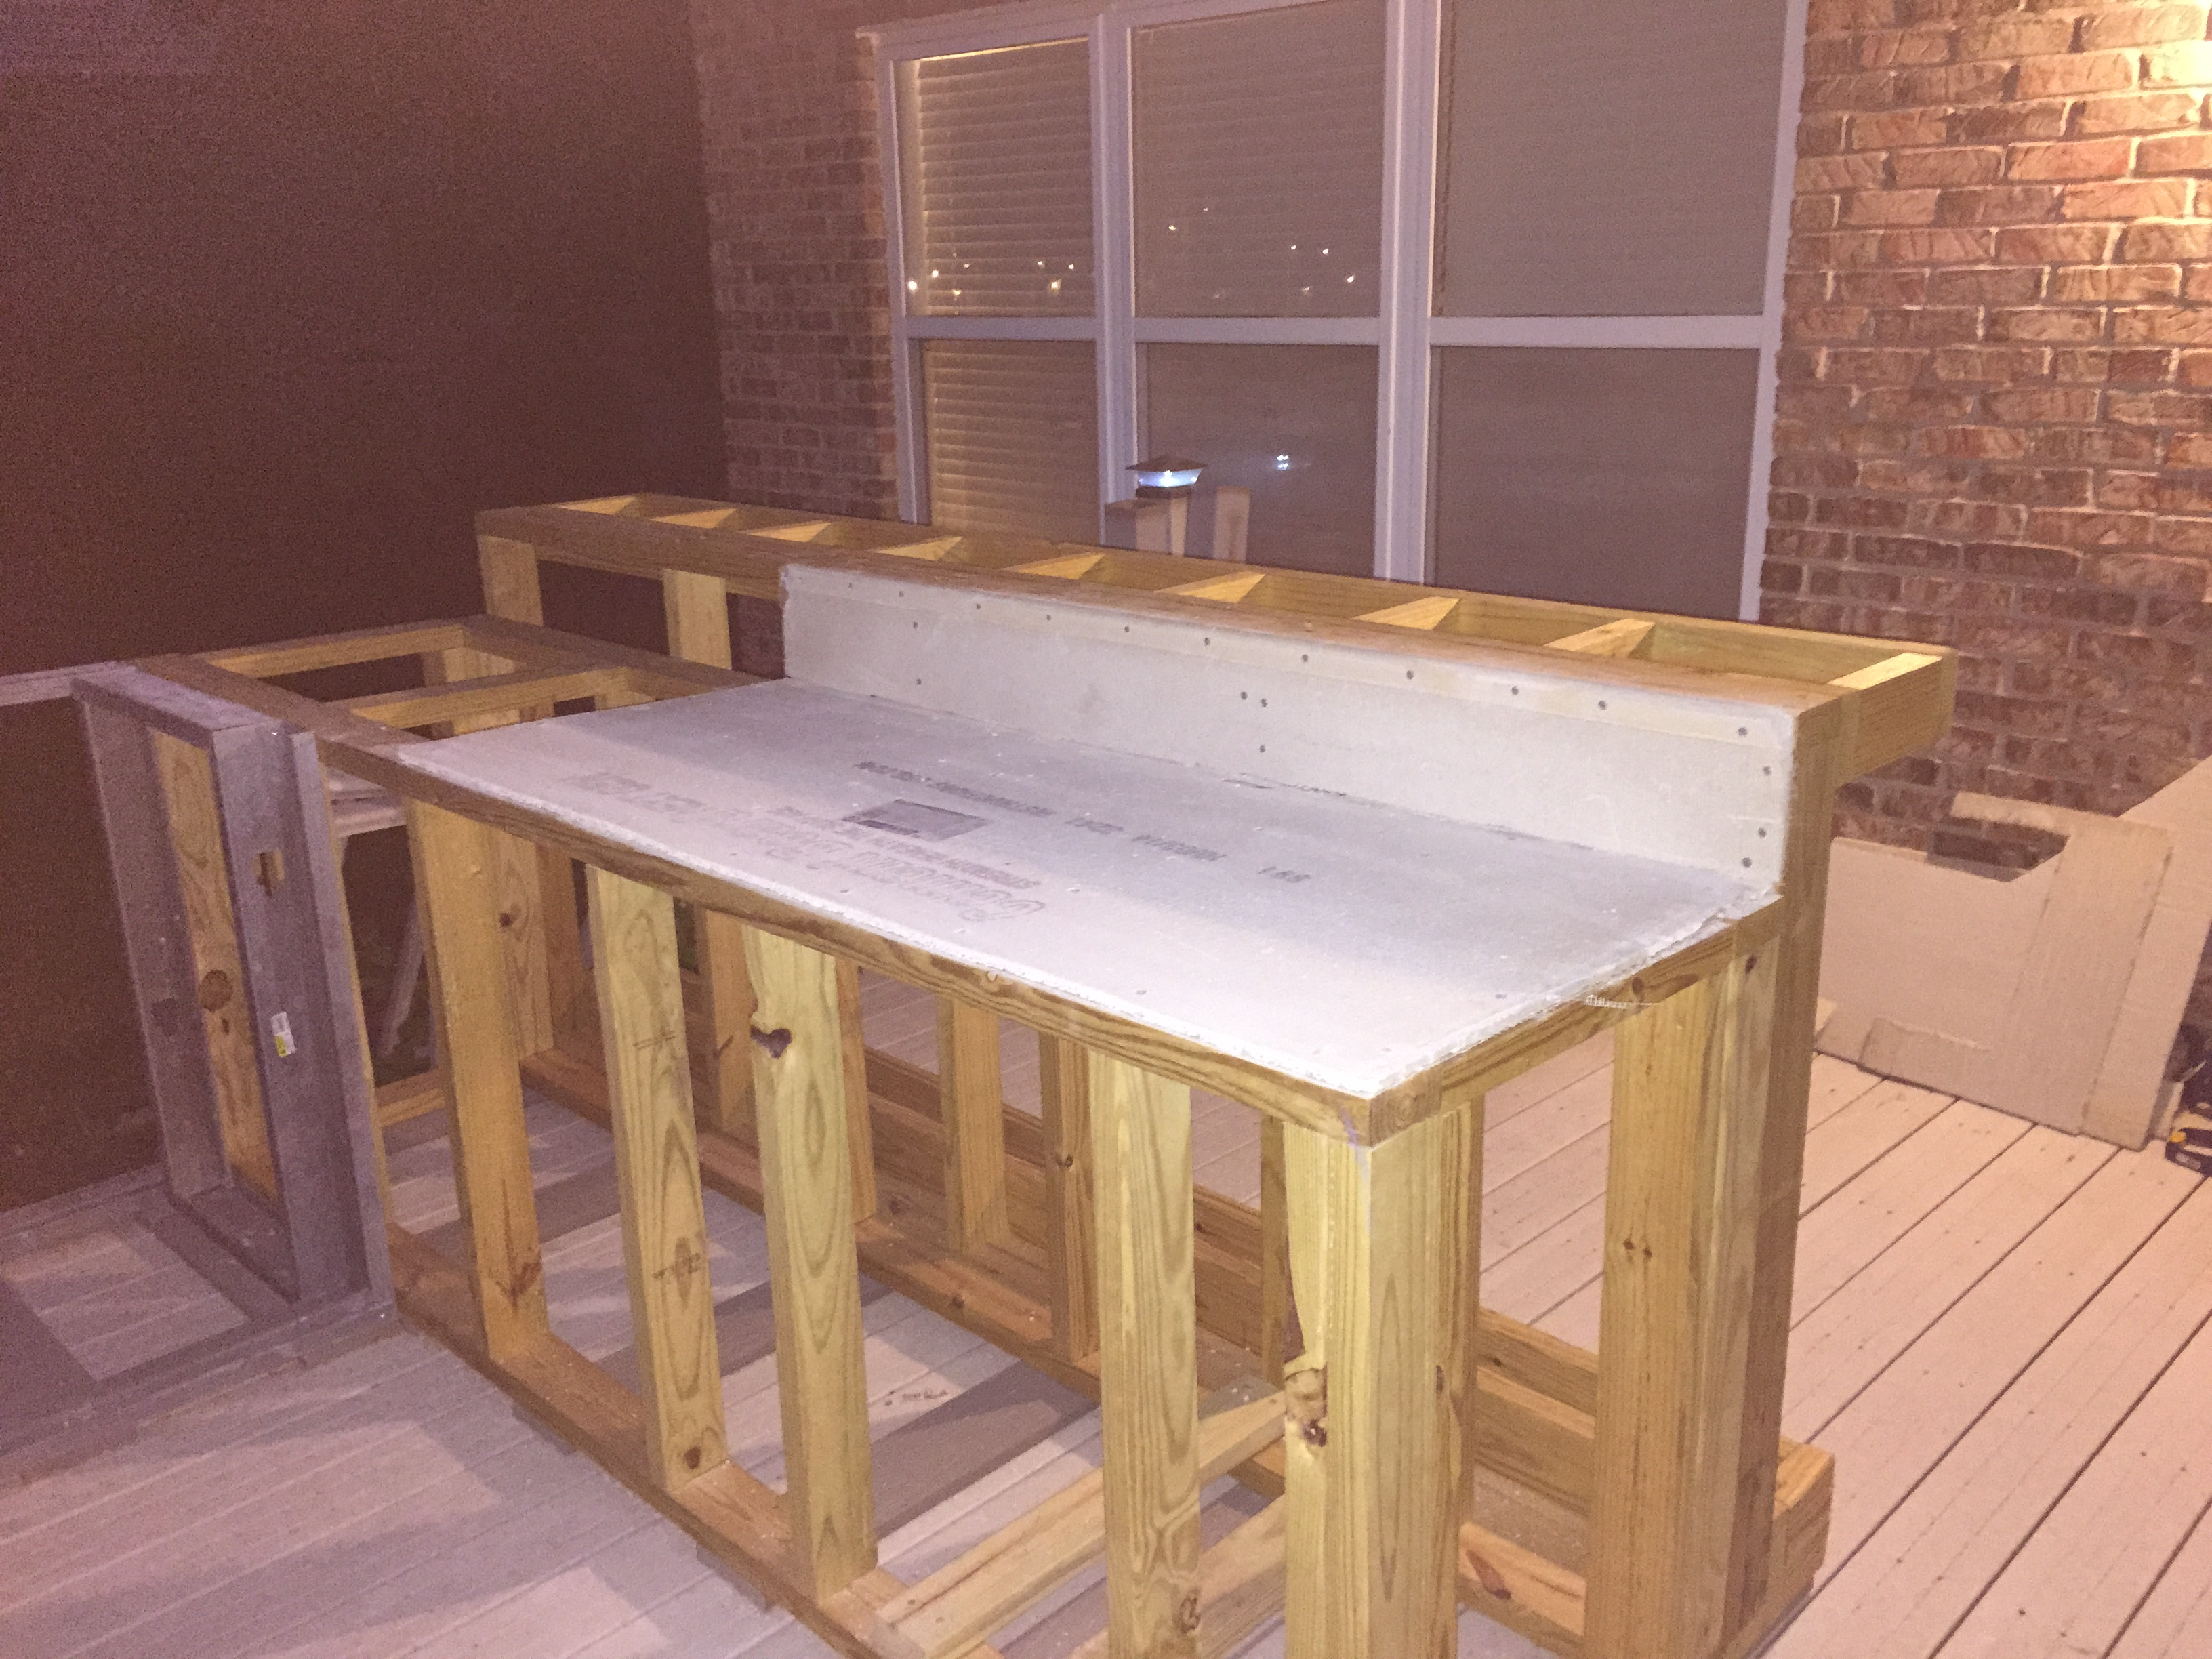 Guy With No Experience Builds Outdoor Kitchen That Would ...